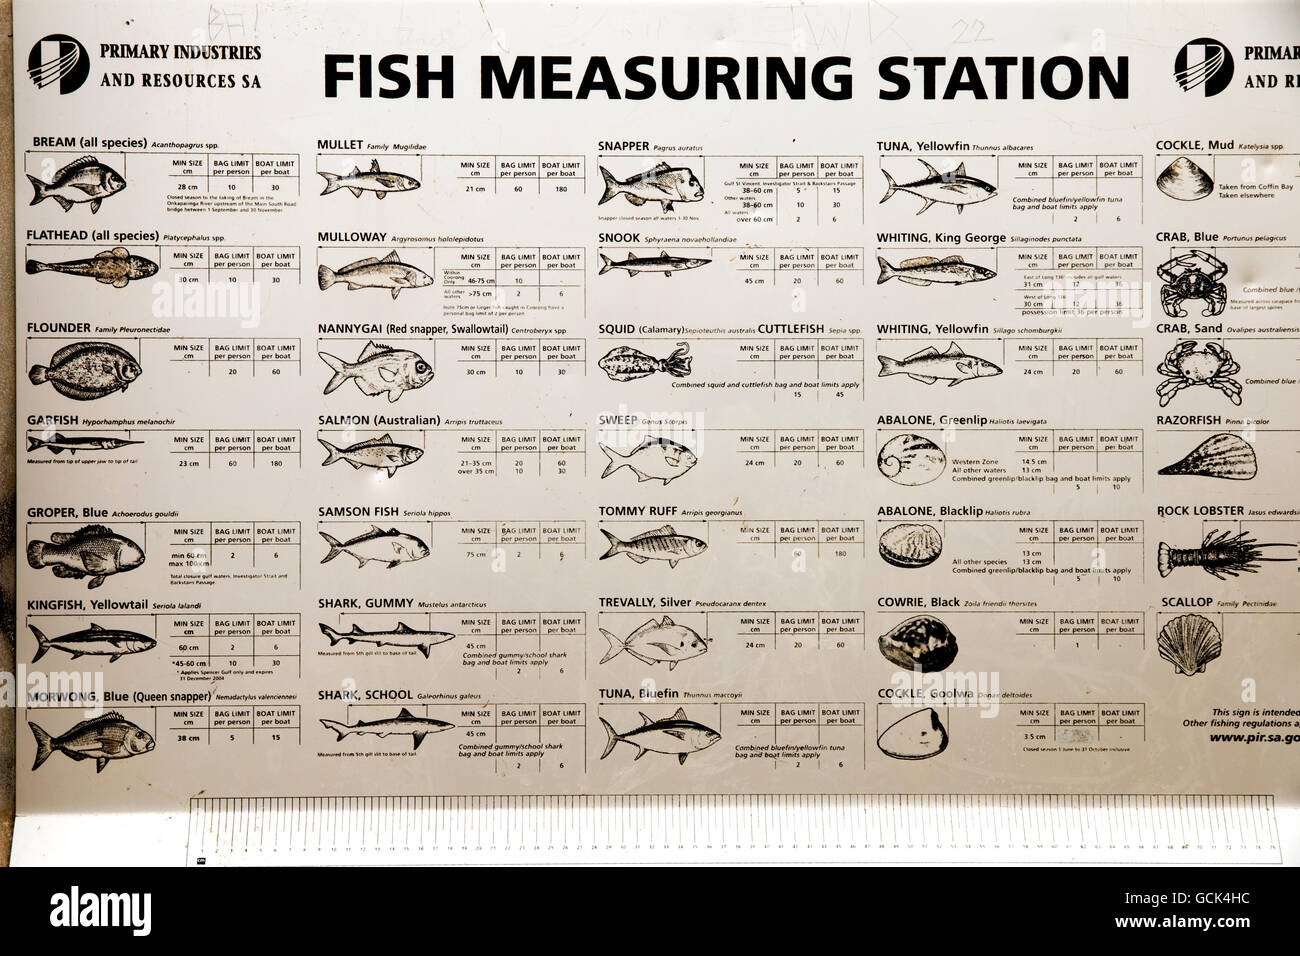 Fish measuring guide on a jetty in Adelaide Australia - Stock Image